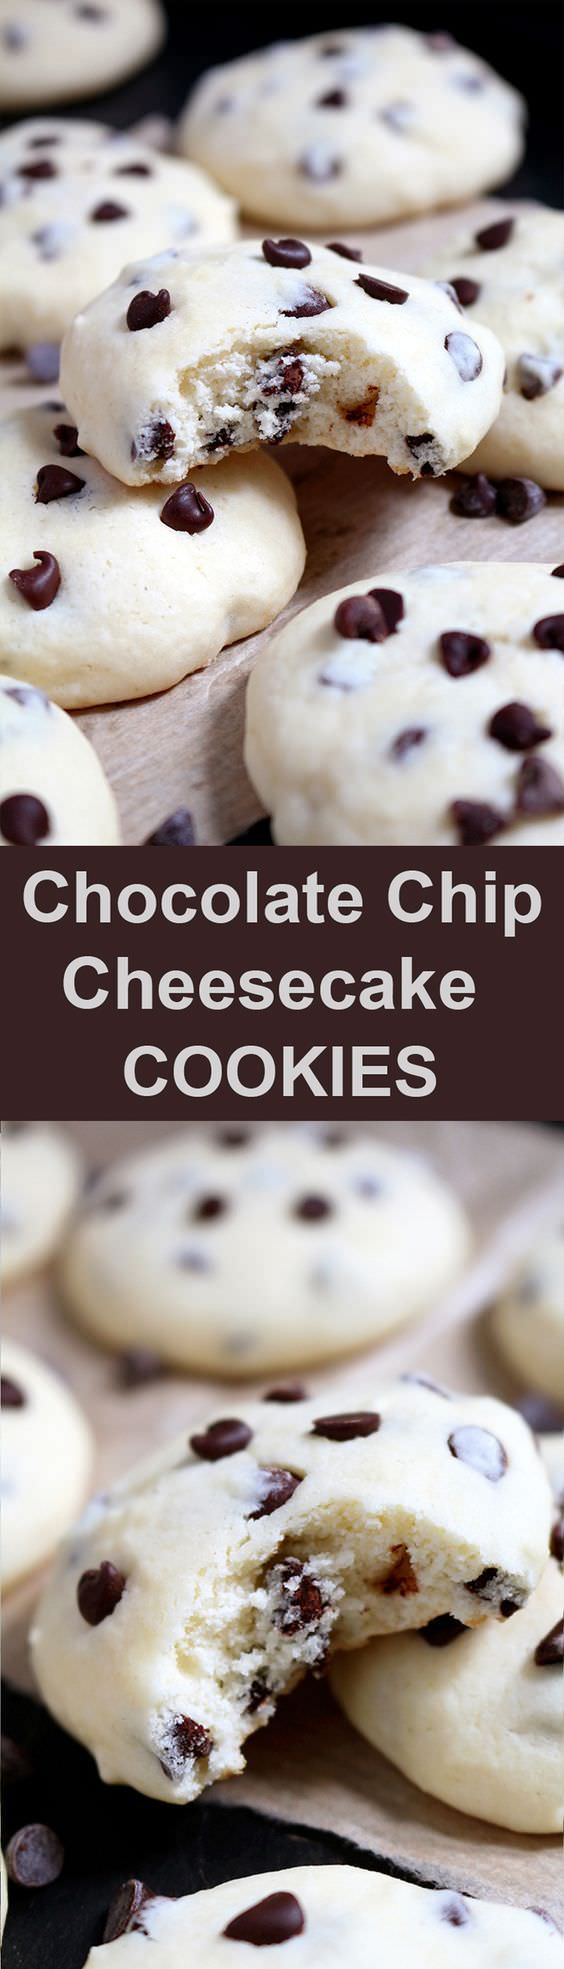 These cookies with cream cheese and mini chocolate chips simply melt in your mouth. Chocolate Chip Cheesecake Cookies are simple, light and delicious!